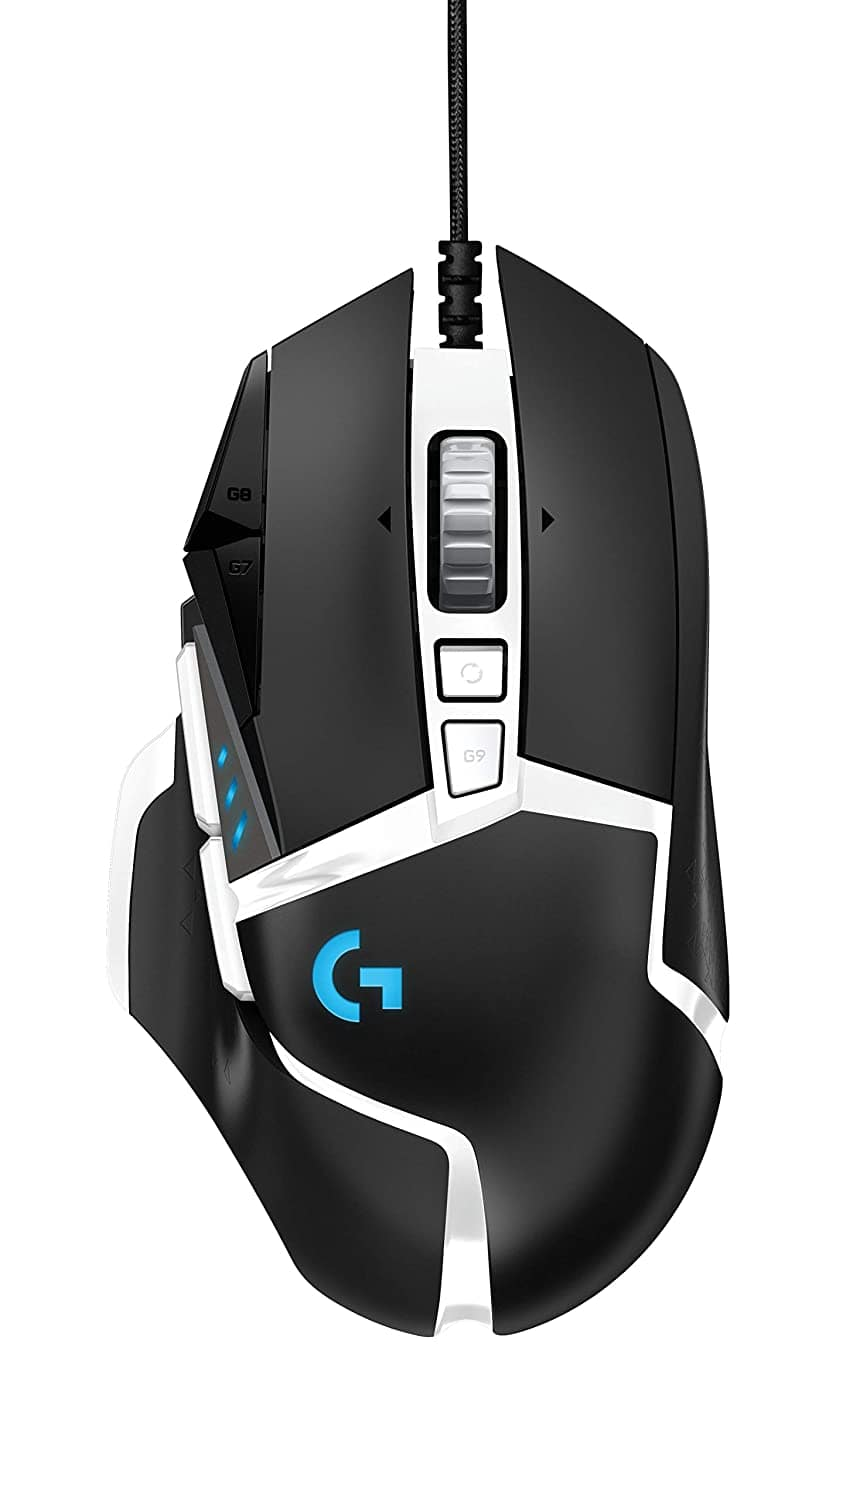 Amazon : Logitech G502 SE Hero High Performance RGB Wired Gaming Mouse with 11 Programmable Buttons $60.81